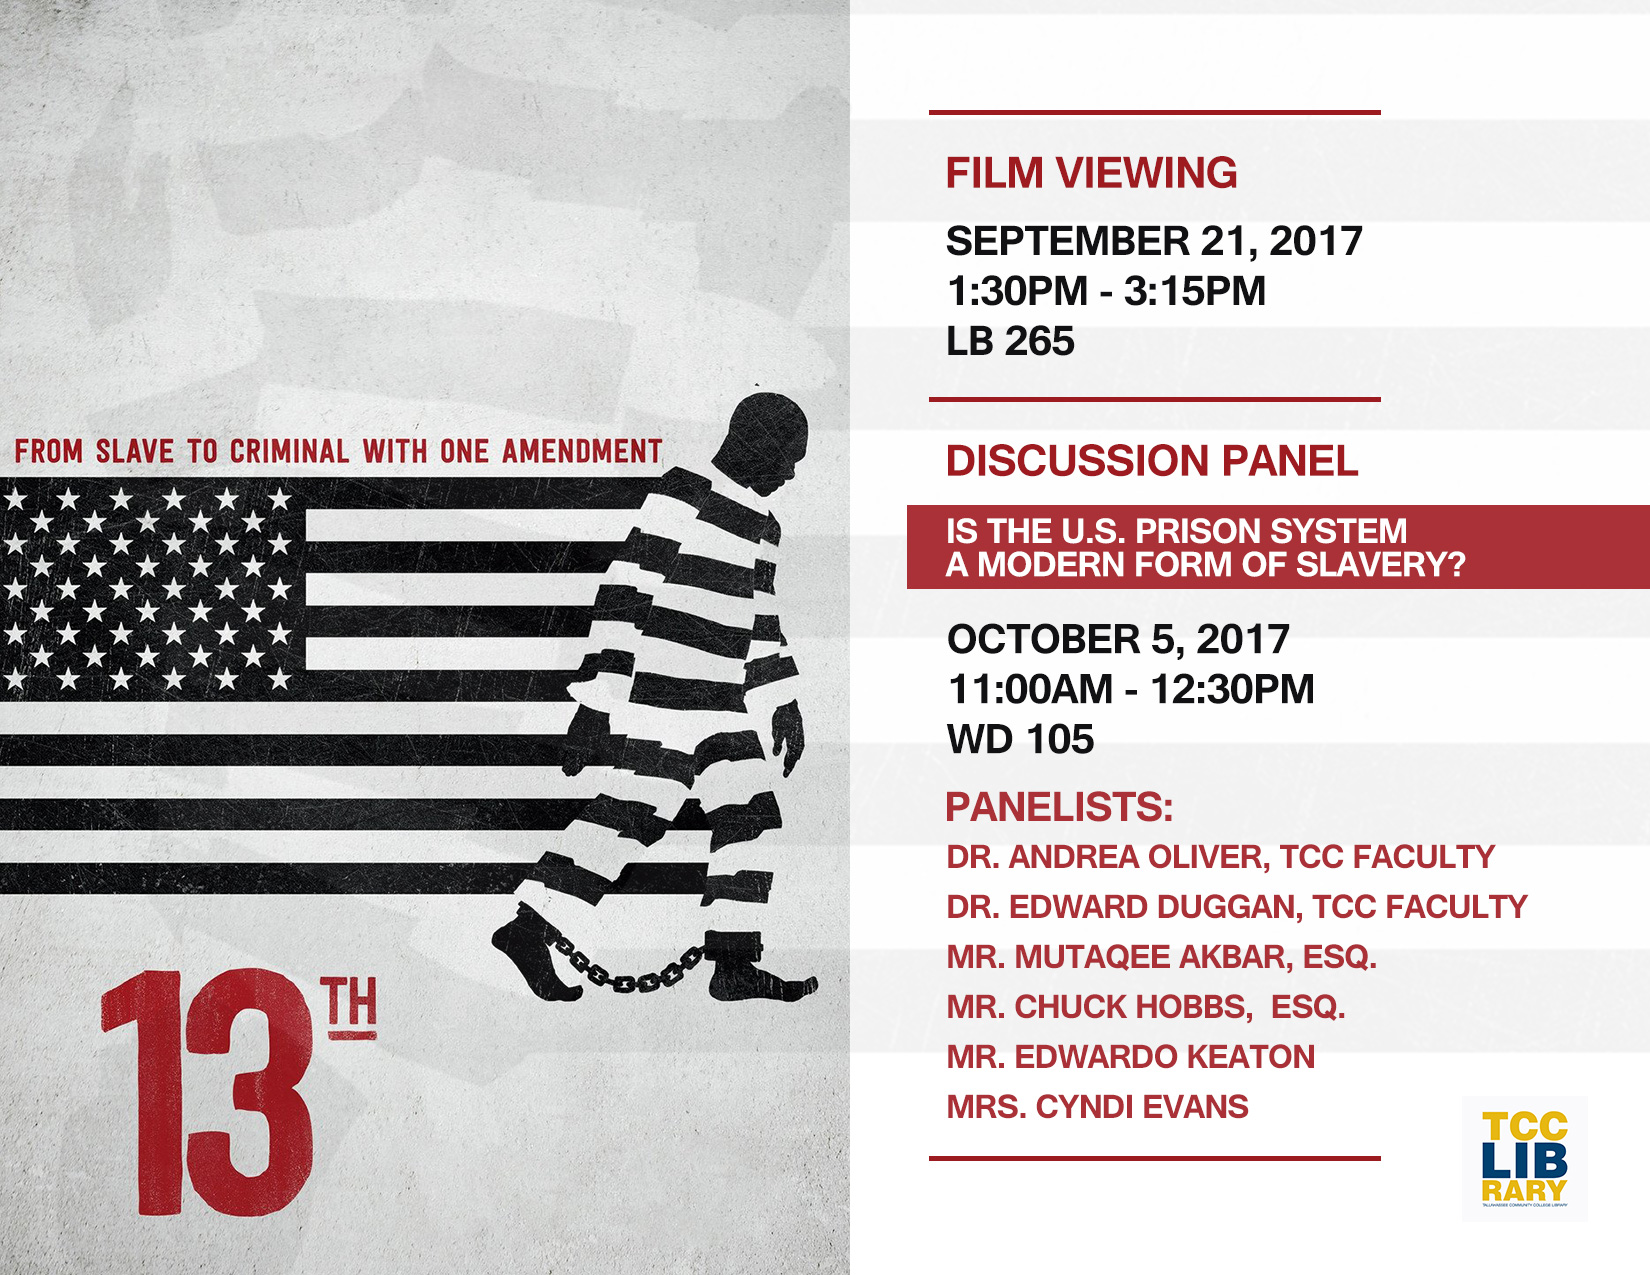 Is the U.S. Prison System a Modern Form of Slavery? 13th film Discussion Panel